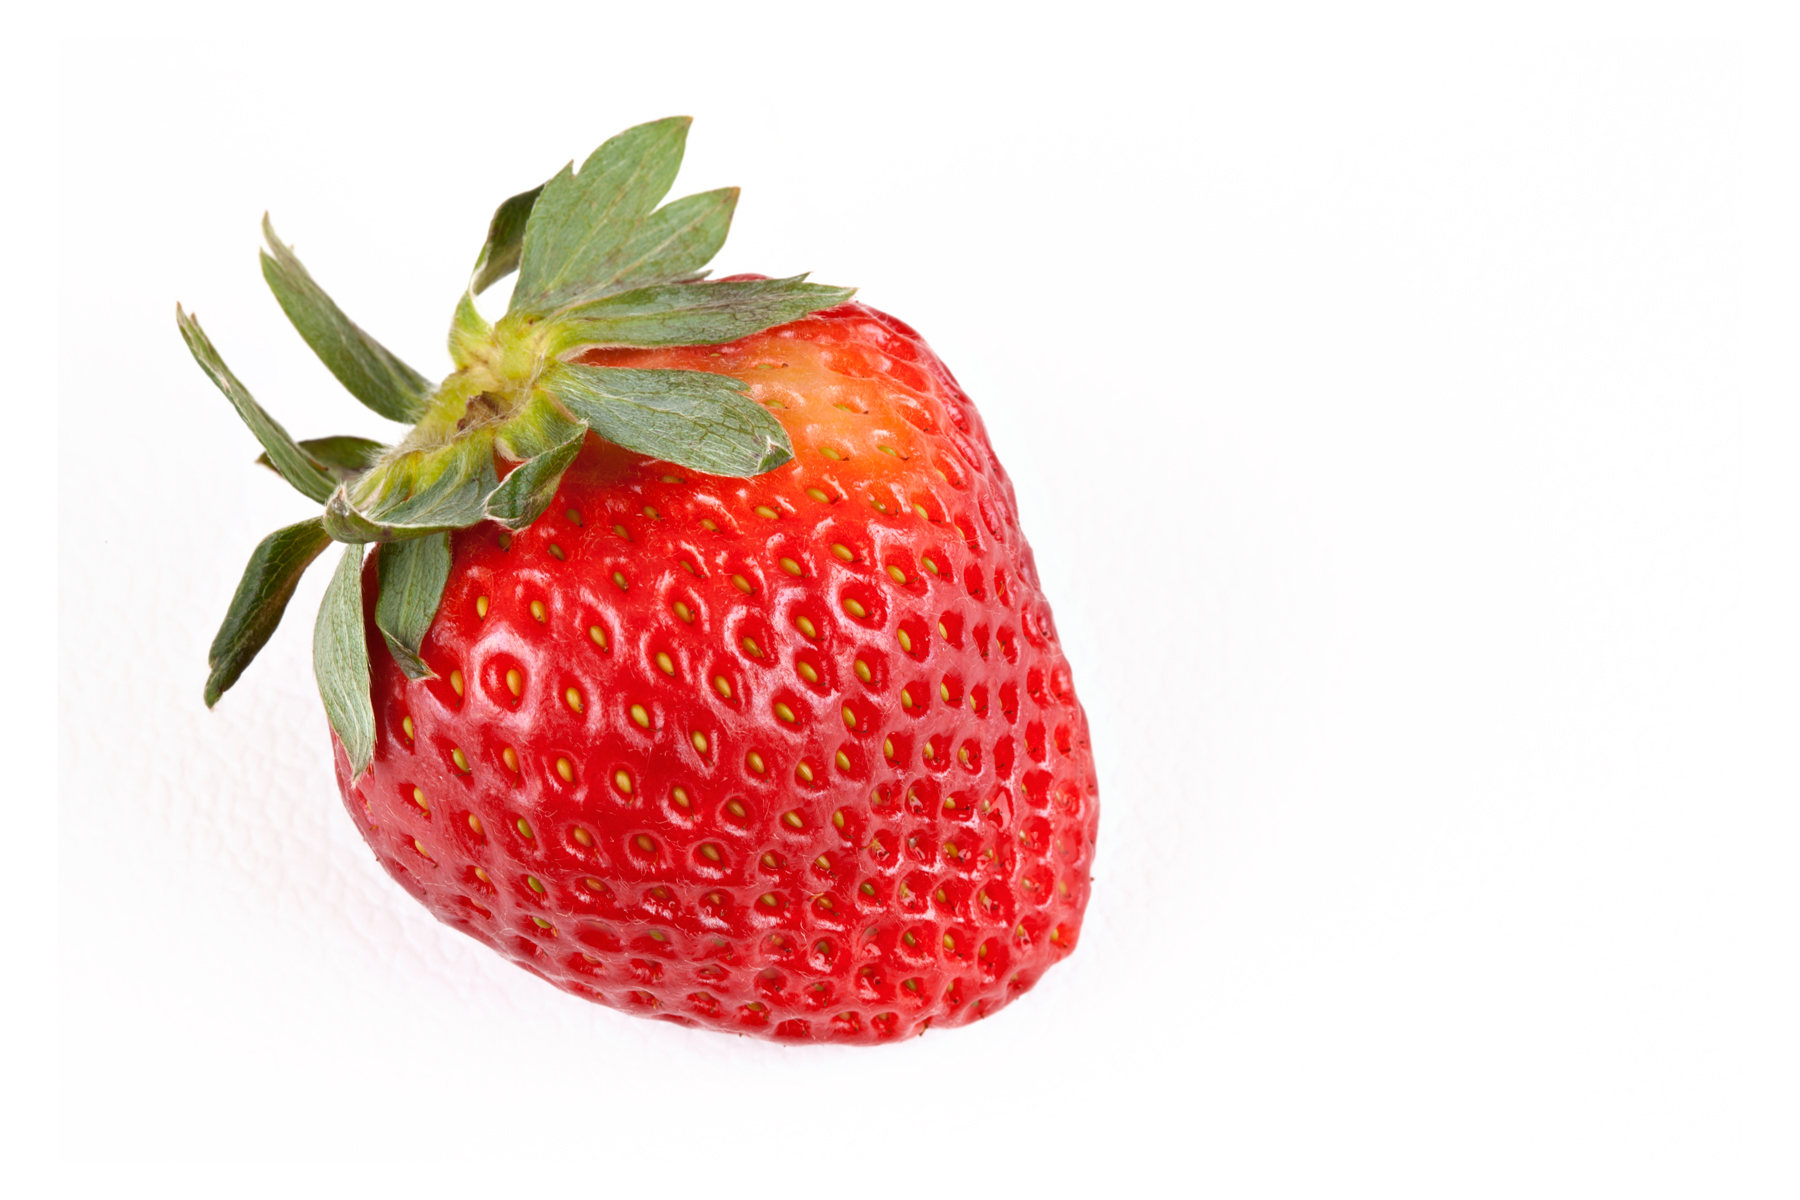 Strawberry close-up photo